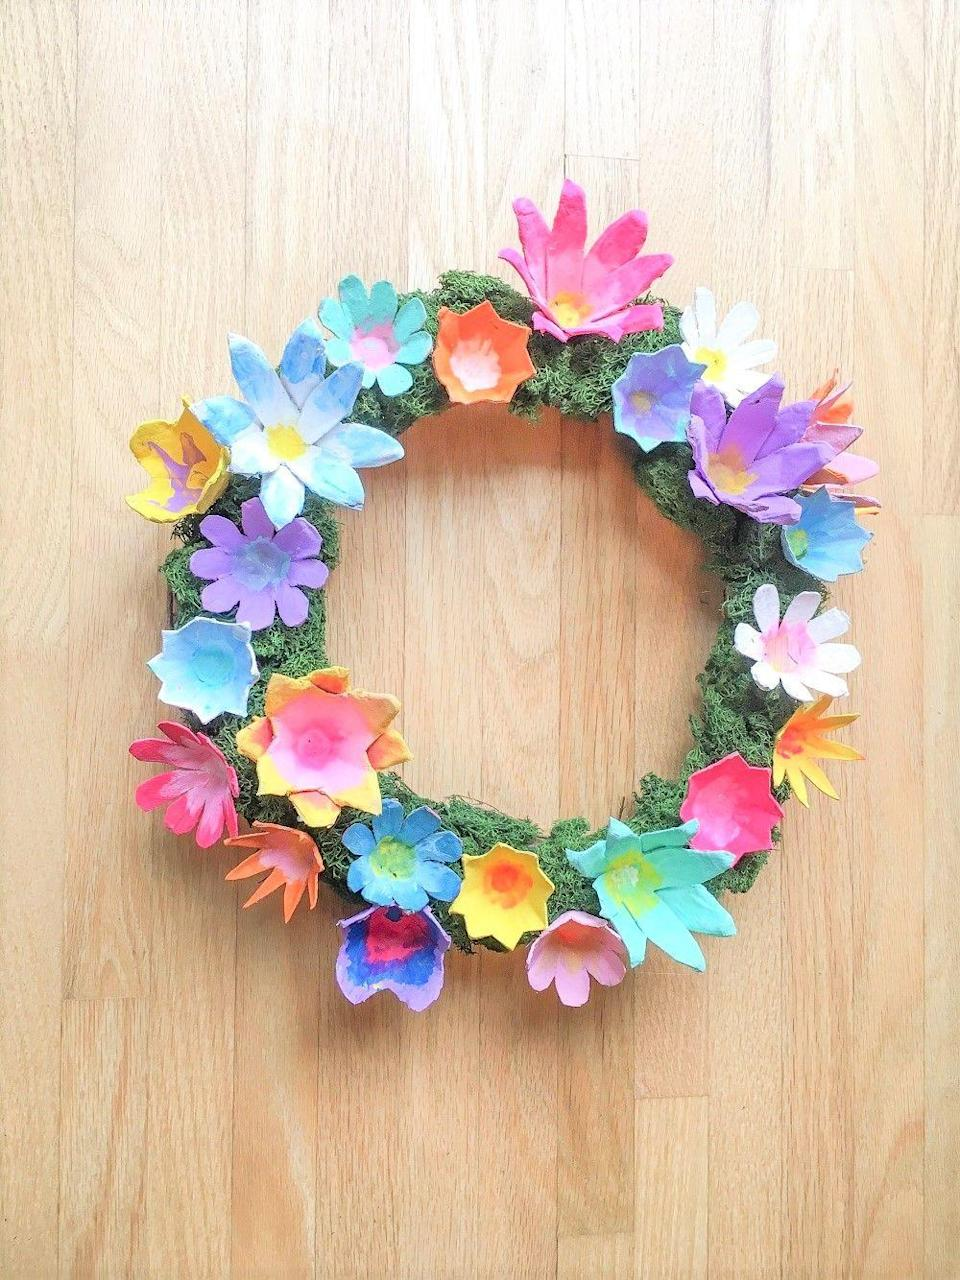 """<p>You're undoubtedly buying a lot of eggs these days, so why not make a flower wreath from the old cartons? It's an ingenious way to put them to good use, and the """"blooms"""" will look really beautiful. </p><p><strong>Get the tutorial at <a href=""""https://makingthingsisawesome.com/diy-flower-wreath/"""" rel=""""nofollow noopener"""" target=""""_blank"""" data-ylk=""""slk:Making Things Is Awesome"""" class=""""link rapid-noclick-resp"""">Making Things Is Awesome</a>.</strong></p><p><a class=""""link rapid-noclick-resp"""" href=""""https://go.redirectingat.com?id=74968X1596630&url=https%3A%2F%2Fwww.walmart.com%2Fip%2FAcrylic-Paint-Brushes-Set-EEEkit-12PCS-Tip-Artist-Paintbrushes-Nylon-Hair-Oil-Watercolor-Painting-Face-Body-Model-Paint-Nail-Art-Miniature-Detailing-%2F288936616&sref=https%3A%2F%2Fwww.thepioneerwoman.com%2Fhome-lifestyle%2Fcrafts-diy%2Fg35698457%2Fdiy-easter-wreath-ideas%2F"""" rel=""""nofollow noopener"""" target=""""_blank"""" data-ylk=""""slk:SHOP PAINT BRUSHES"""">SHOP PAINT BRUSHES</a></p>"""